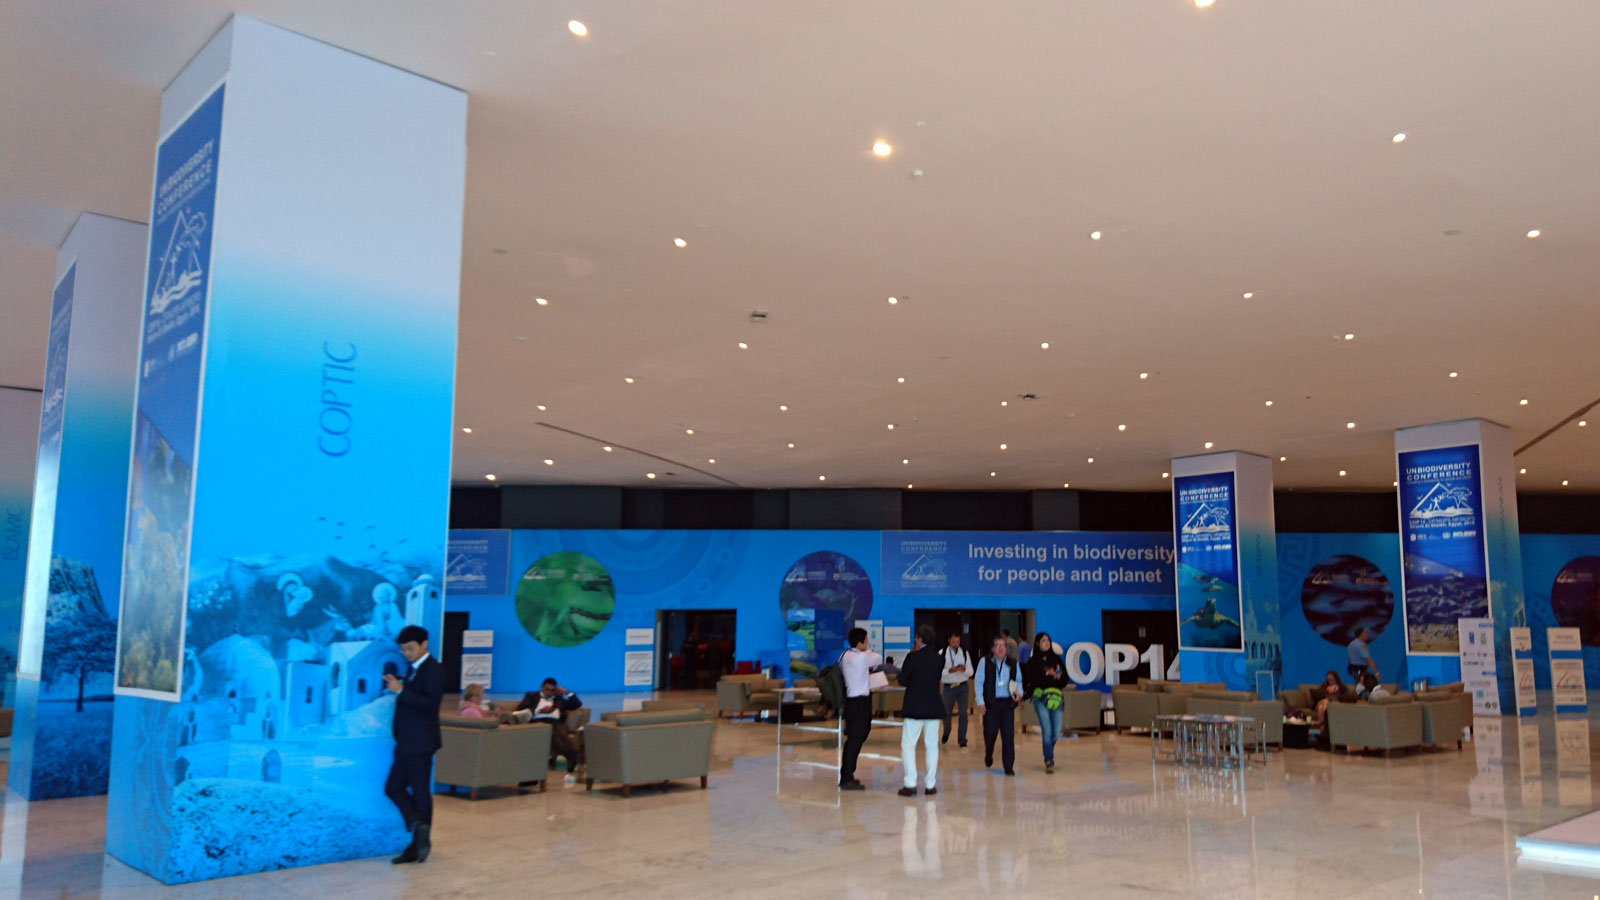 UN Biodiversity Conference at Sharm El Sheikh